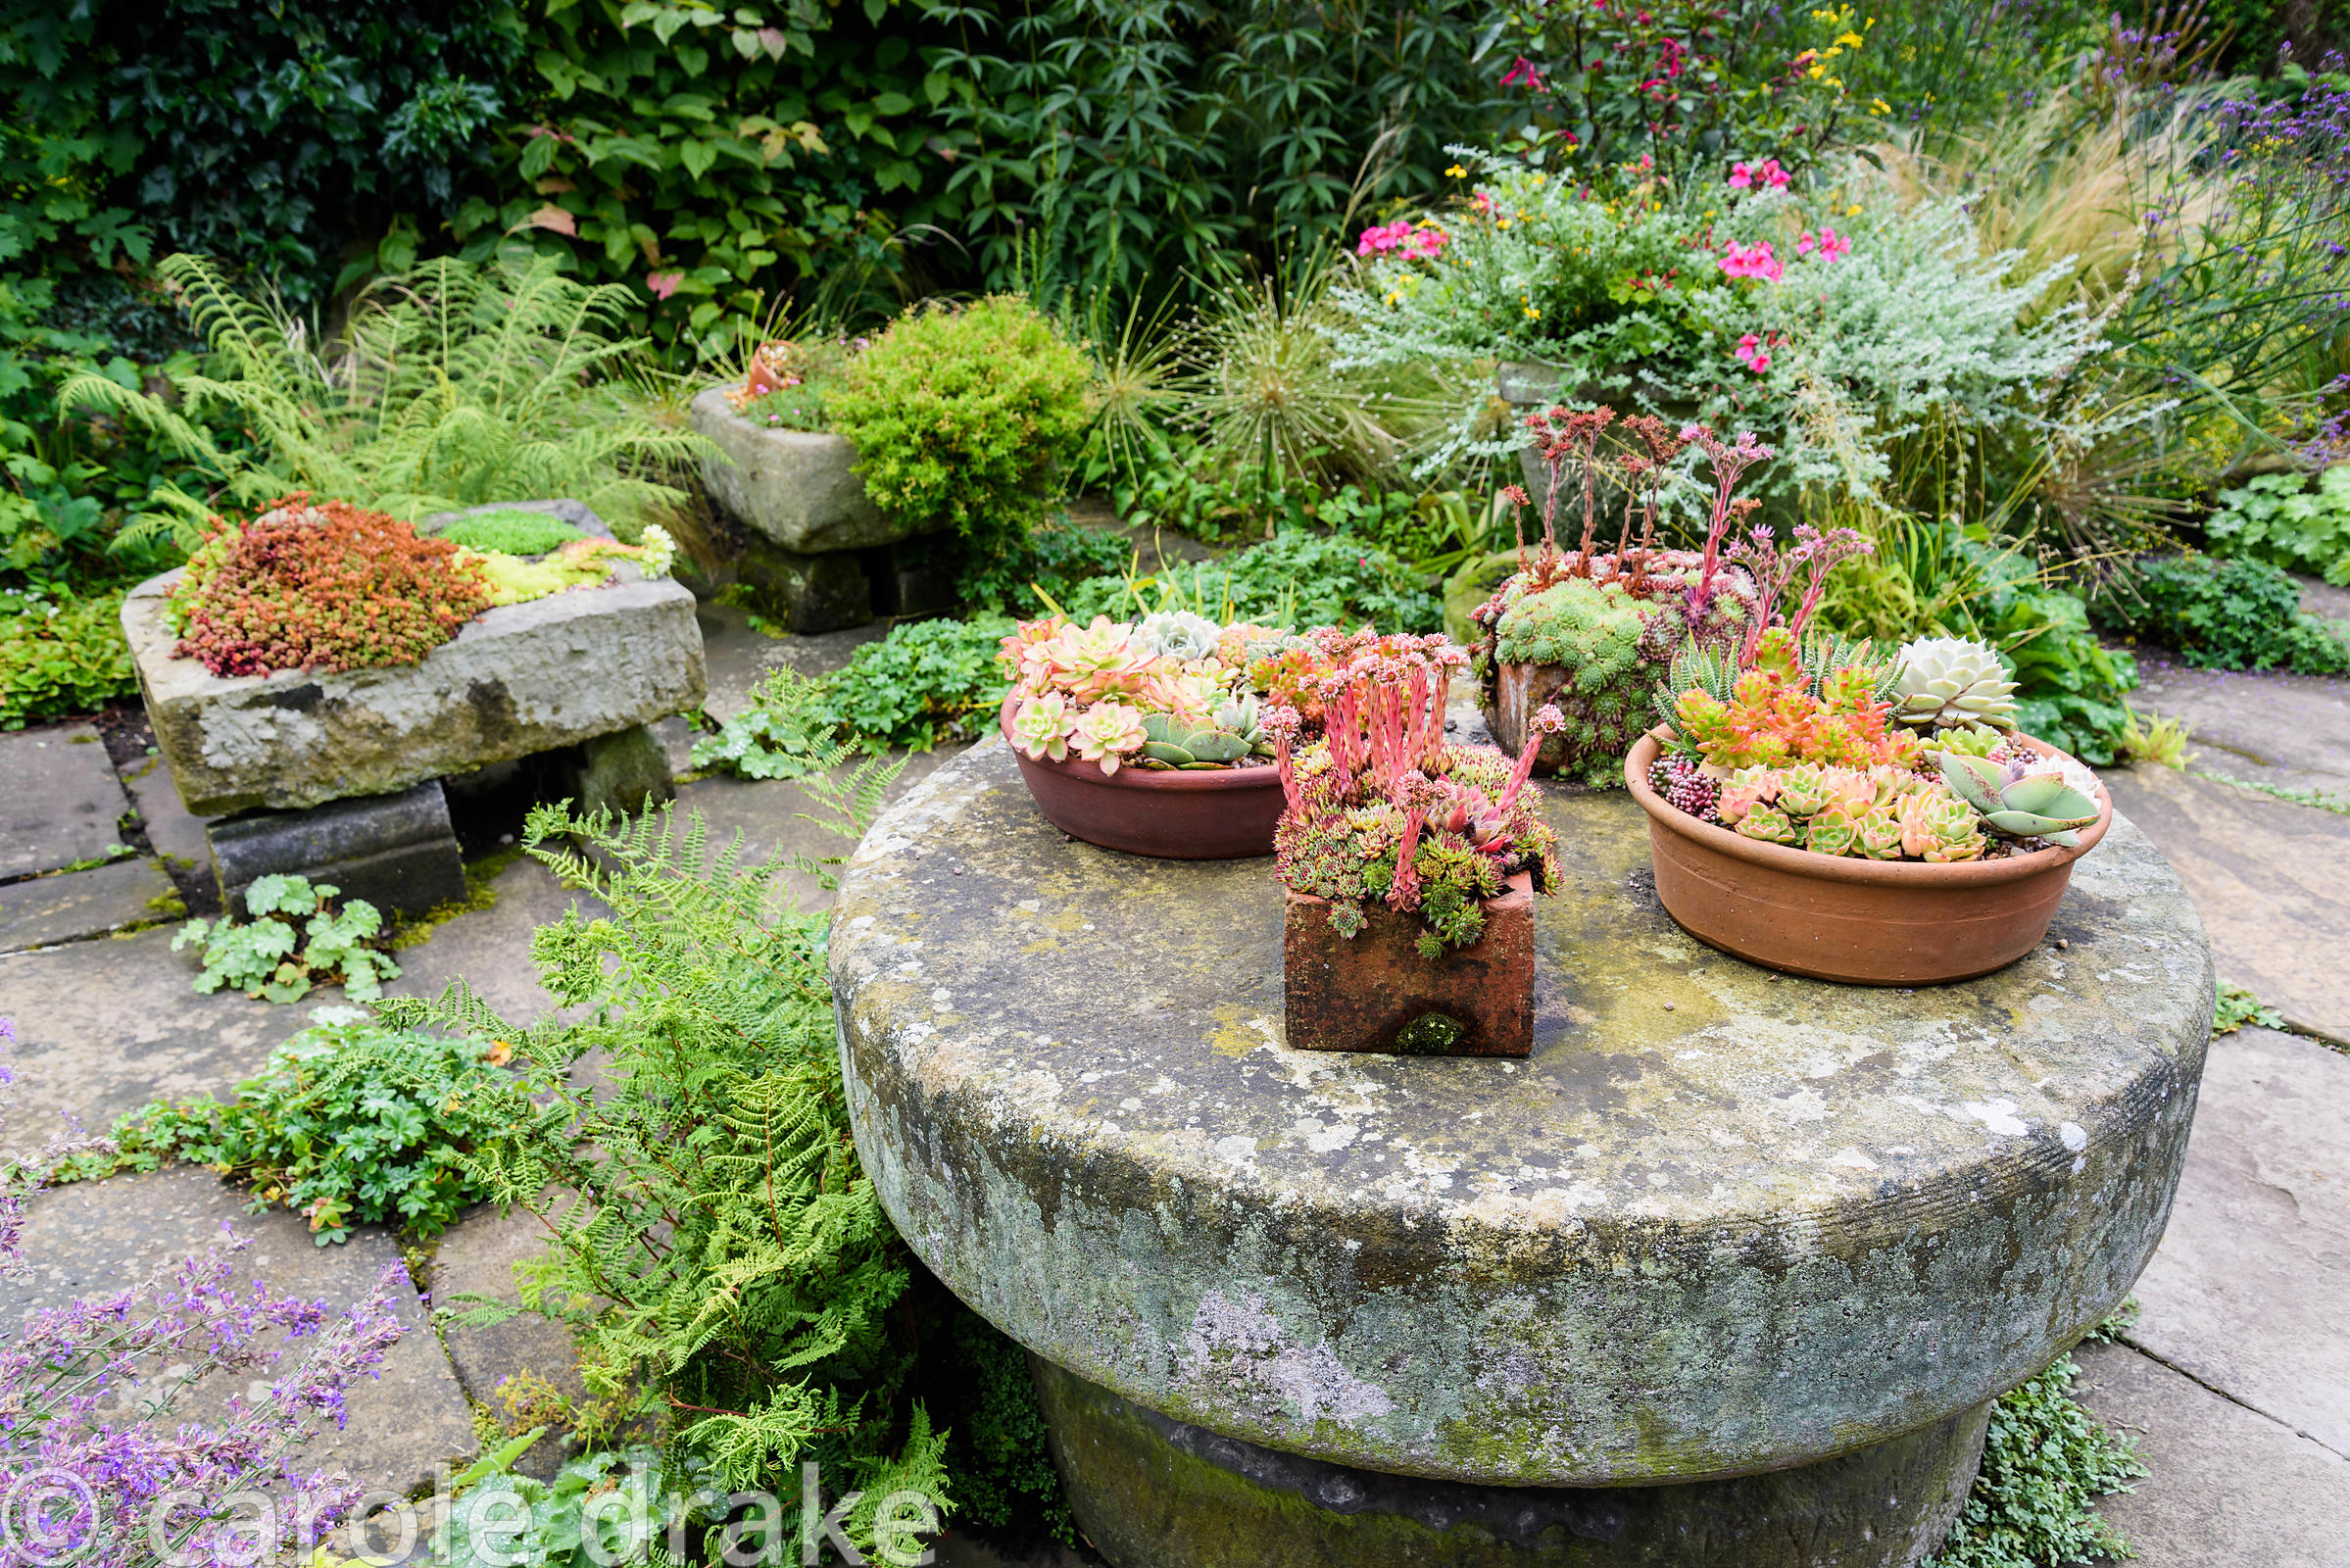 Terracotta pans and bricks planted with succulents including sedums, sempervivums and aeoniums at York Gate Garden, Adel in July